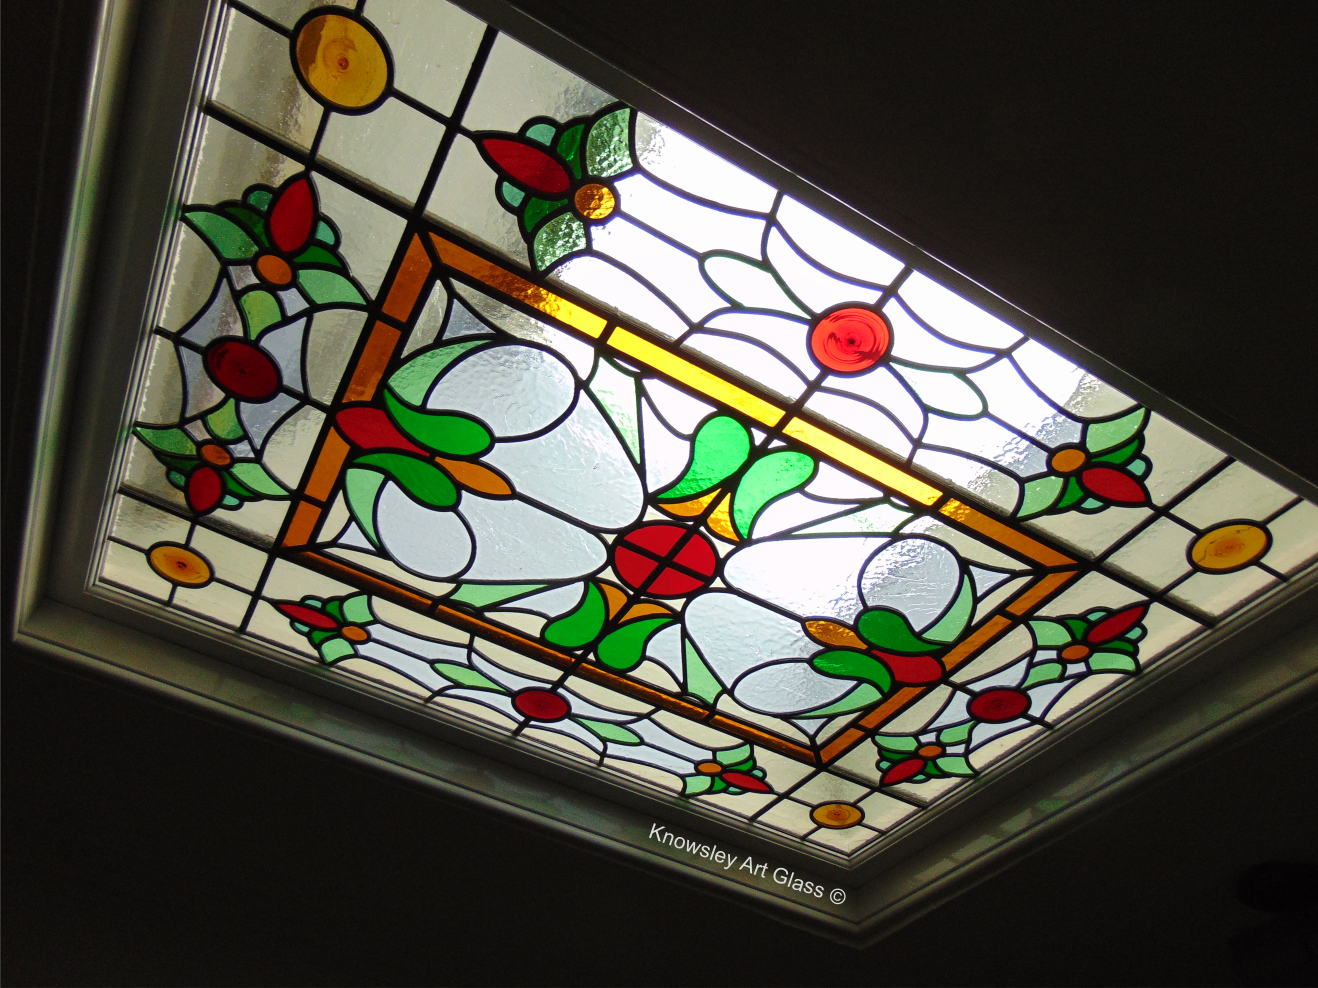 Specialise in restoring Stained glass panels